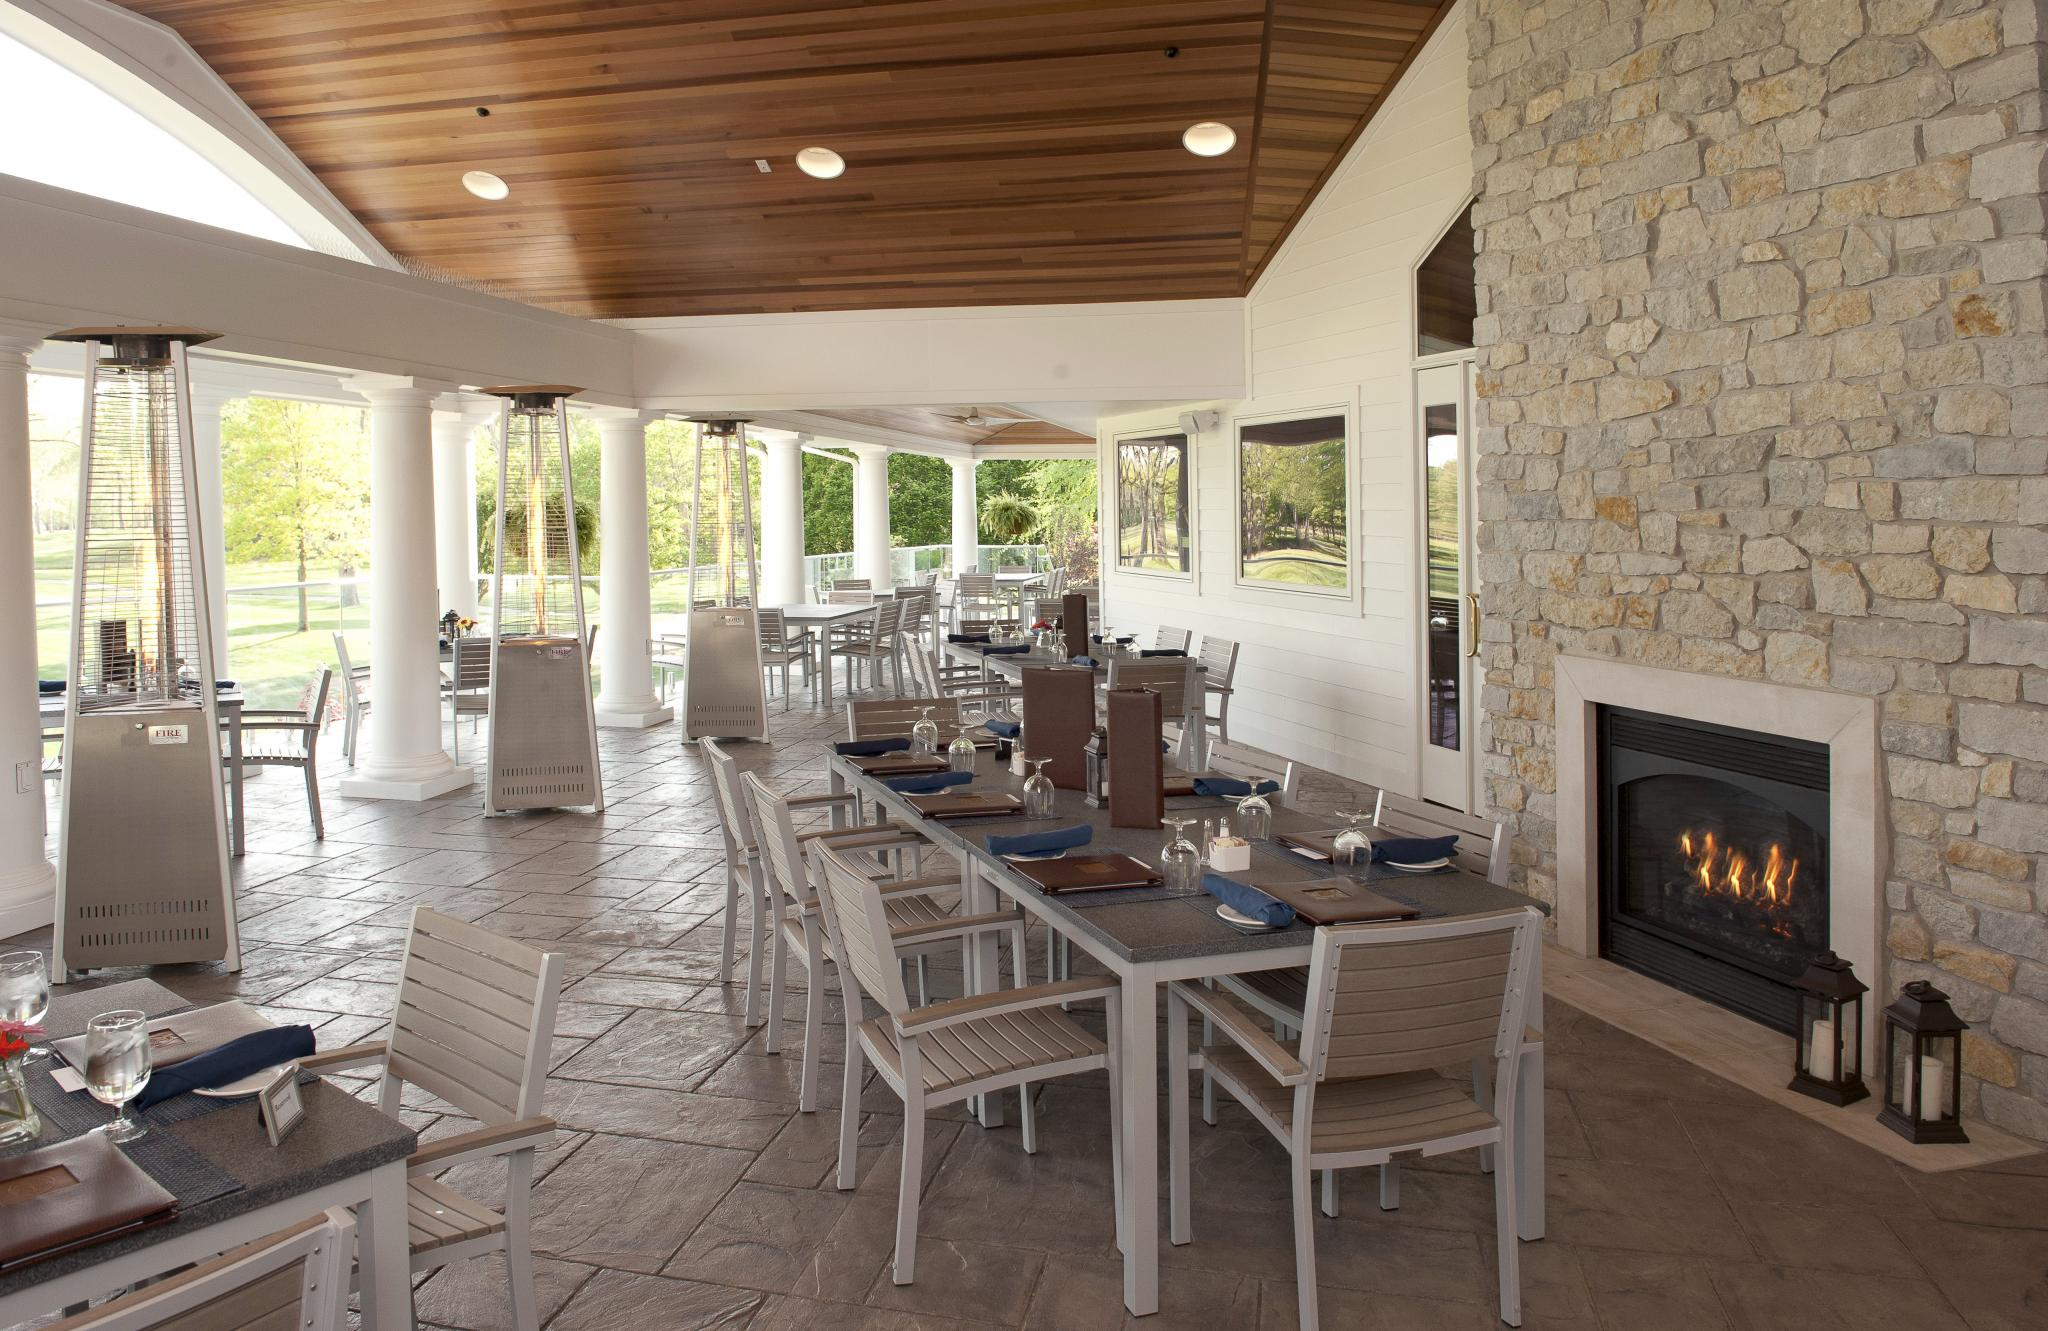 an image of an outdoor patio